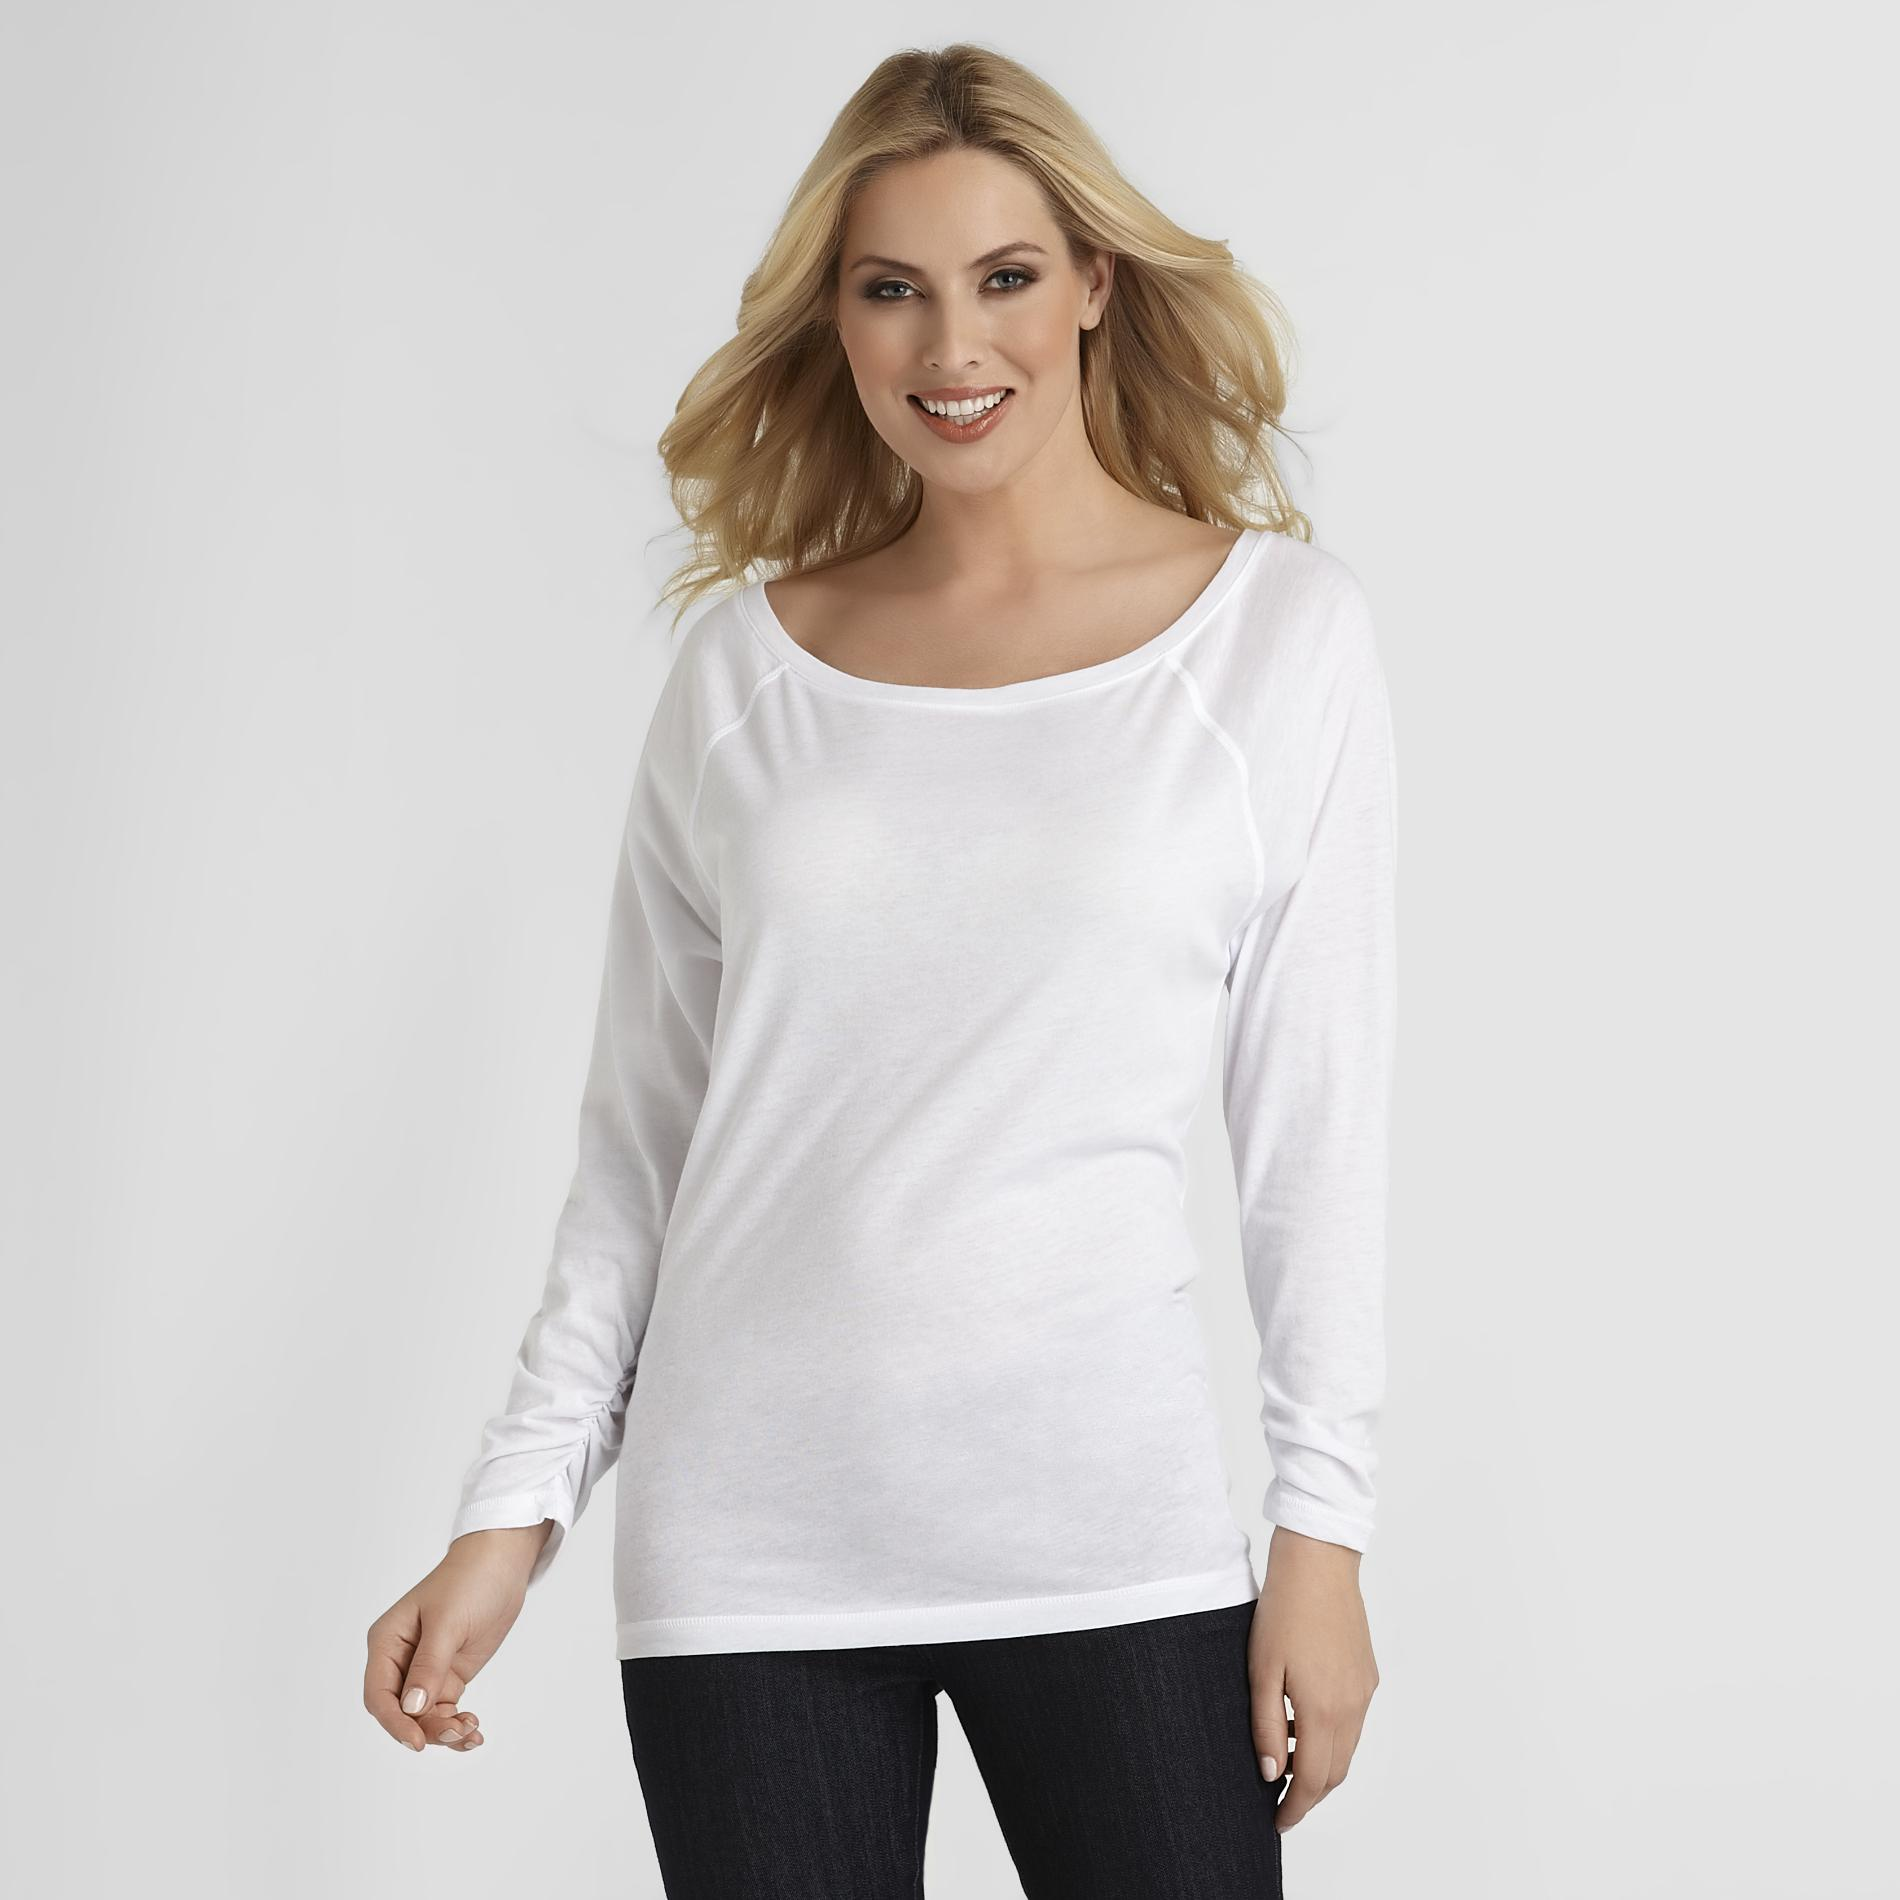 Sofia by Sofia Vergara Women's Oversized T-Shirt at Kmart.com